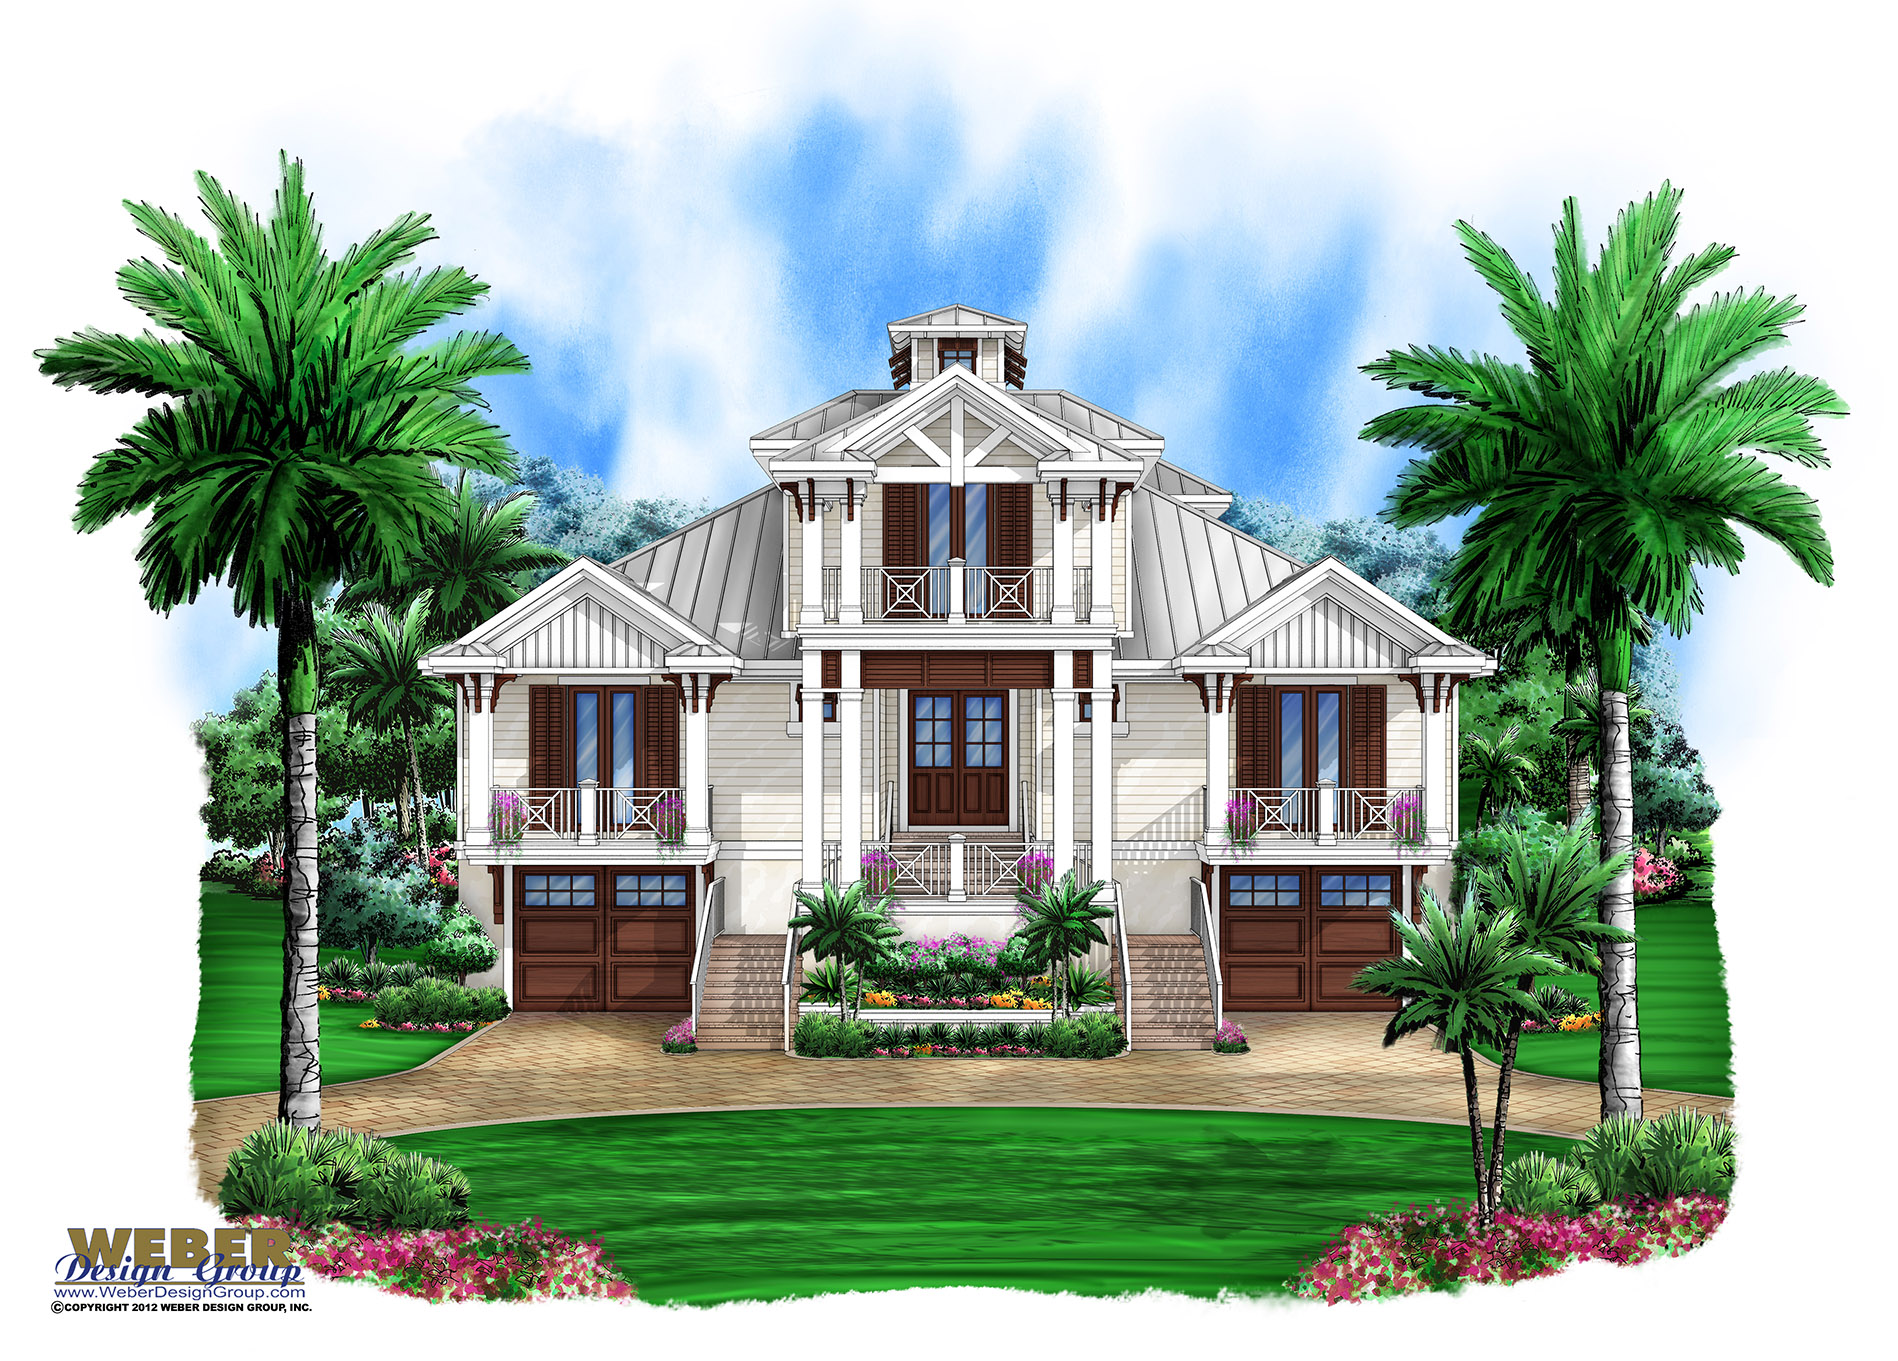 Marsh harbour olde florida house plan weber design group for Seaside house plans designs